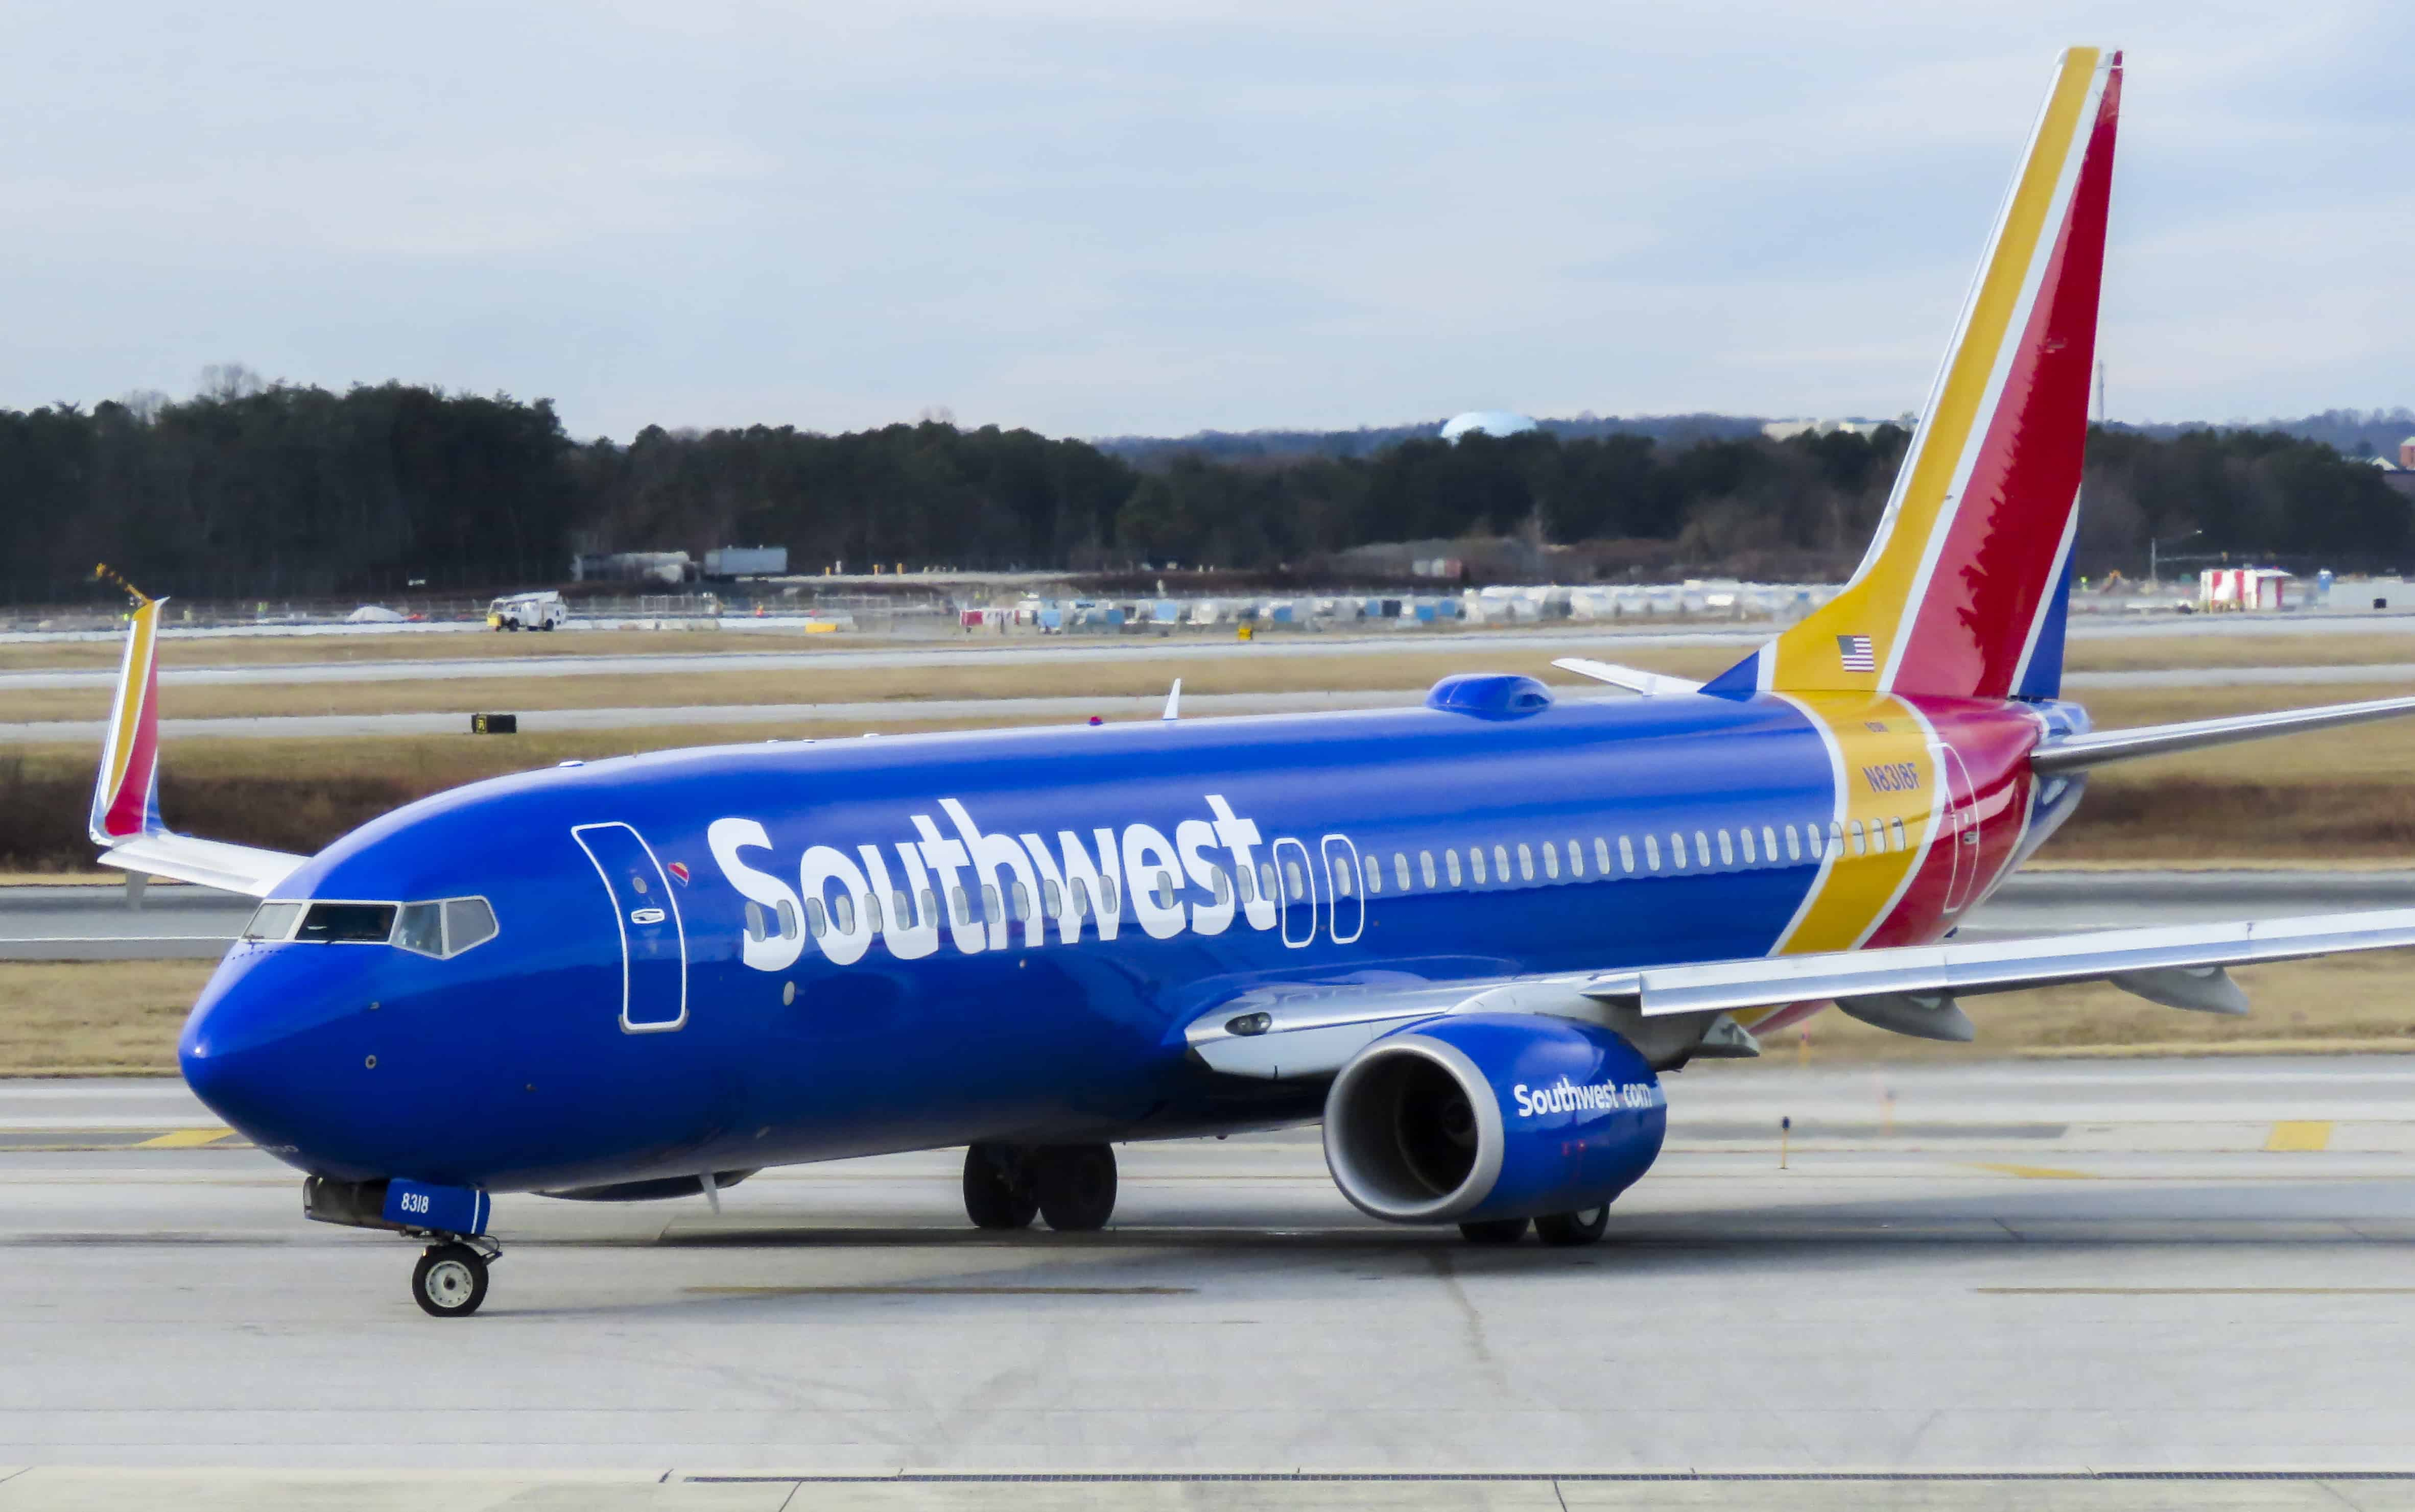 Un avion de la Compagnie Southwest Airlines